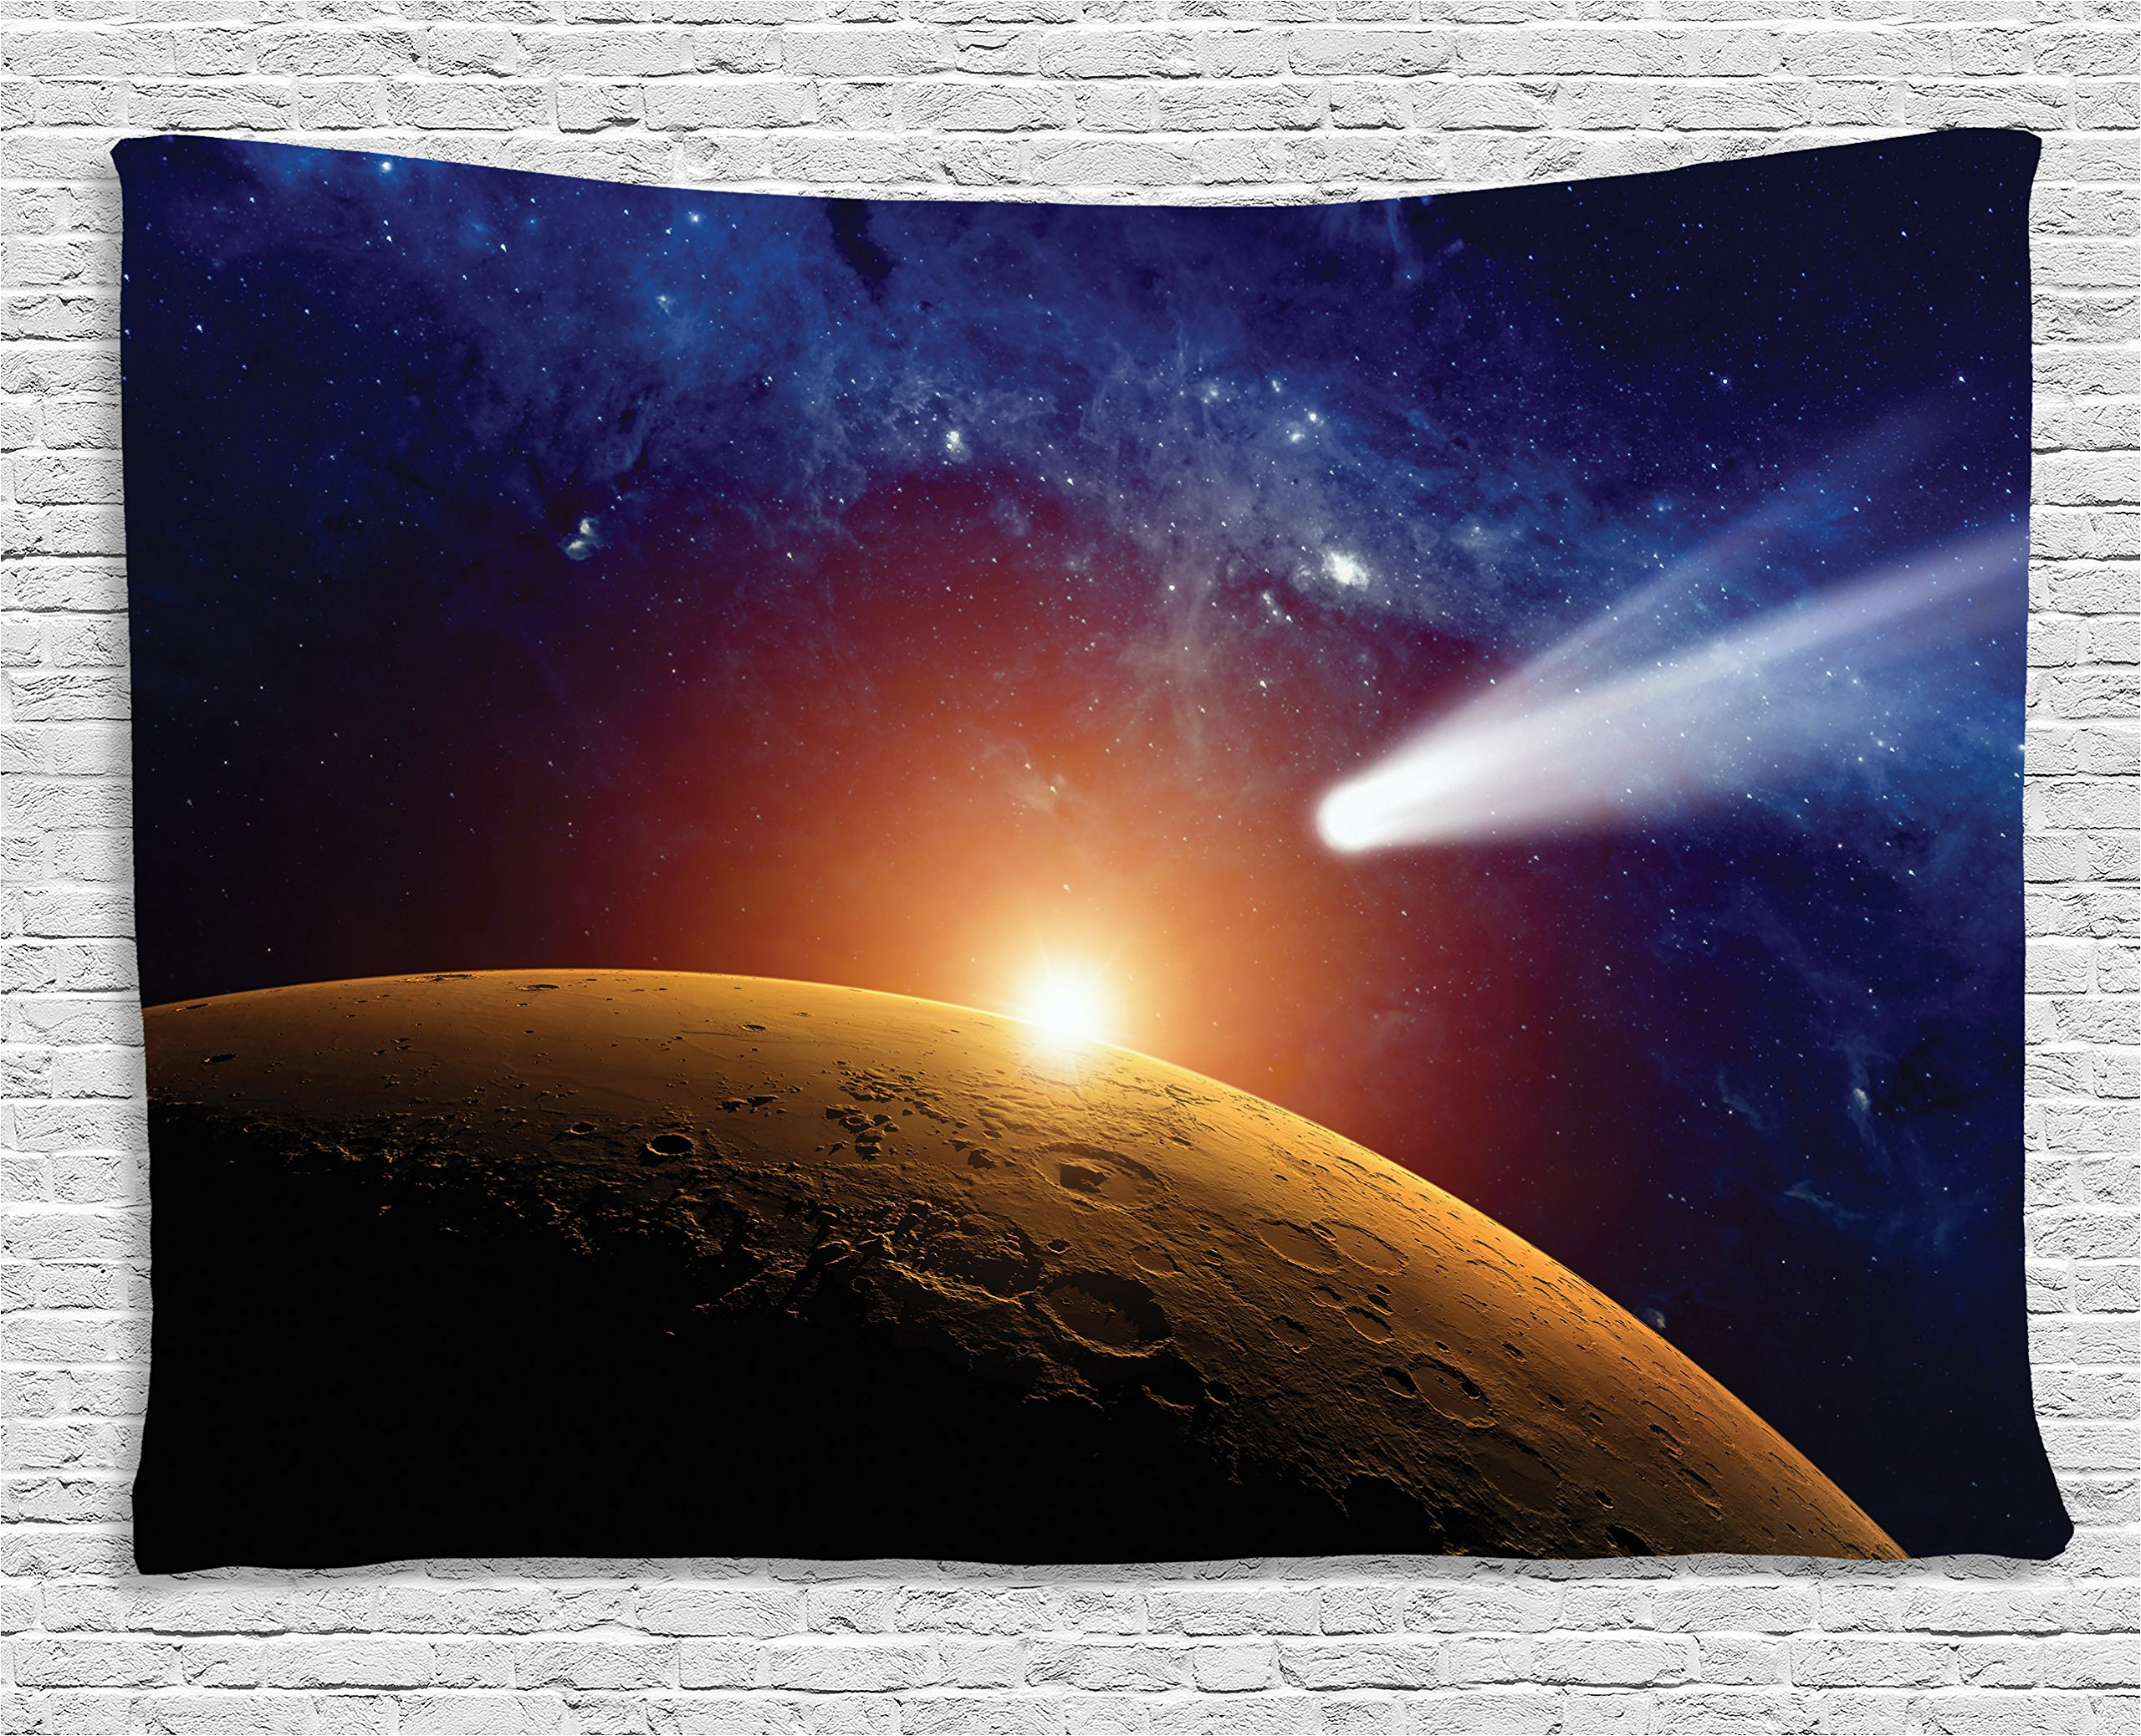 Ambesonne Outer Space Decor Tapestry, Comet Tail Approaching Planet Mars Fantastic Star Cosmos Dark Solar System Scenery, Wall Hanging for Bedroom Living Room Dorm, 80 W X 60 L, Blue and Orange